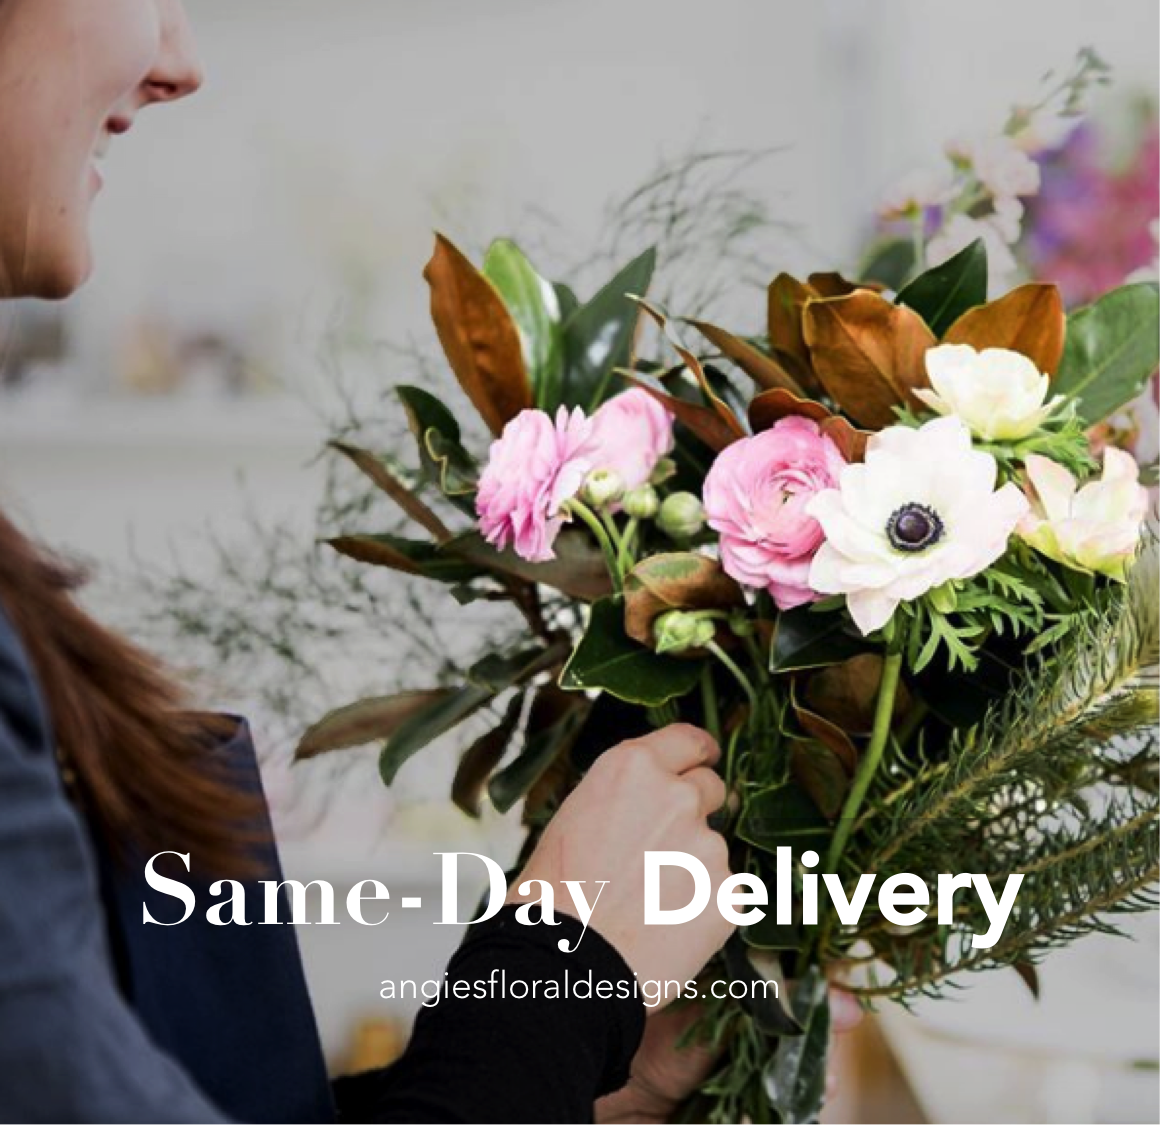 0-angies-floral-design-a-nniversary-send-gifts-79912-handcrafted-gifts-same-day-delivery-roses-flowershop-el-paso-texas-79912-shop-online-flowers-florist-best-florist.png